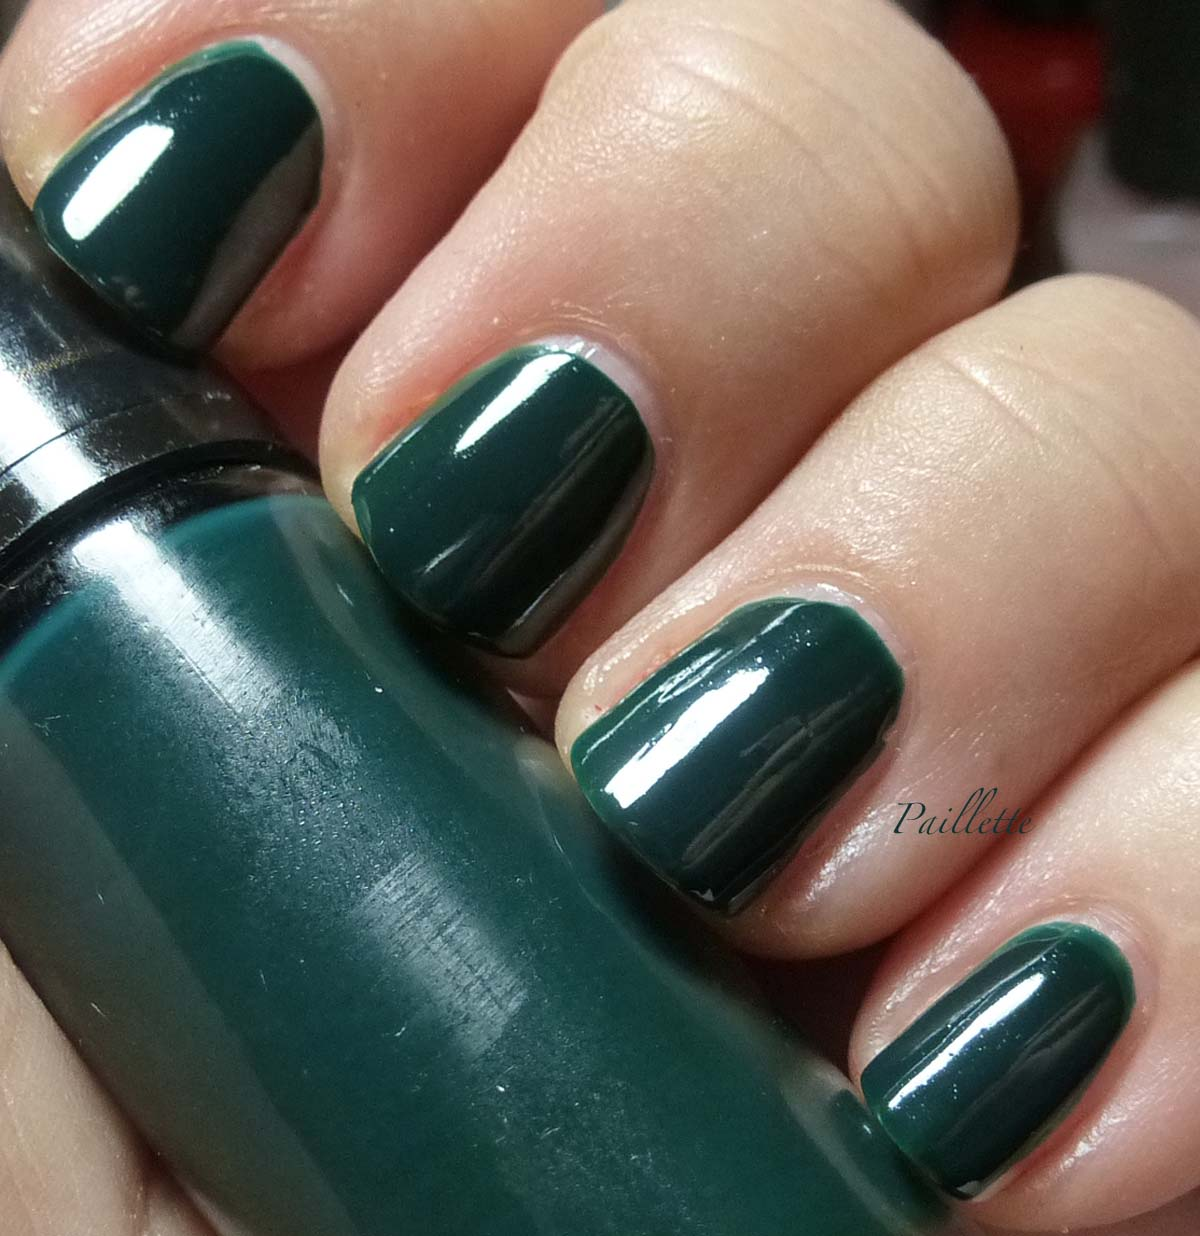 Paillette: a little nail polish journal: Pair of Dark Greens